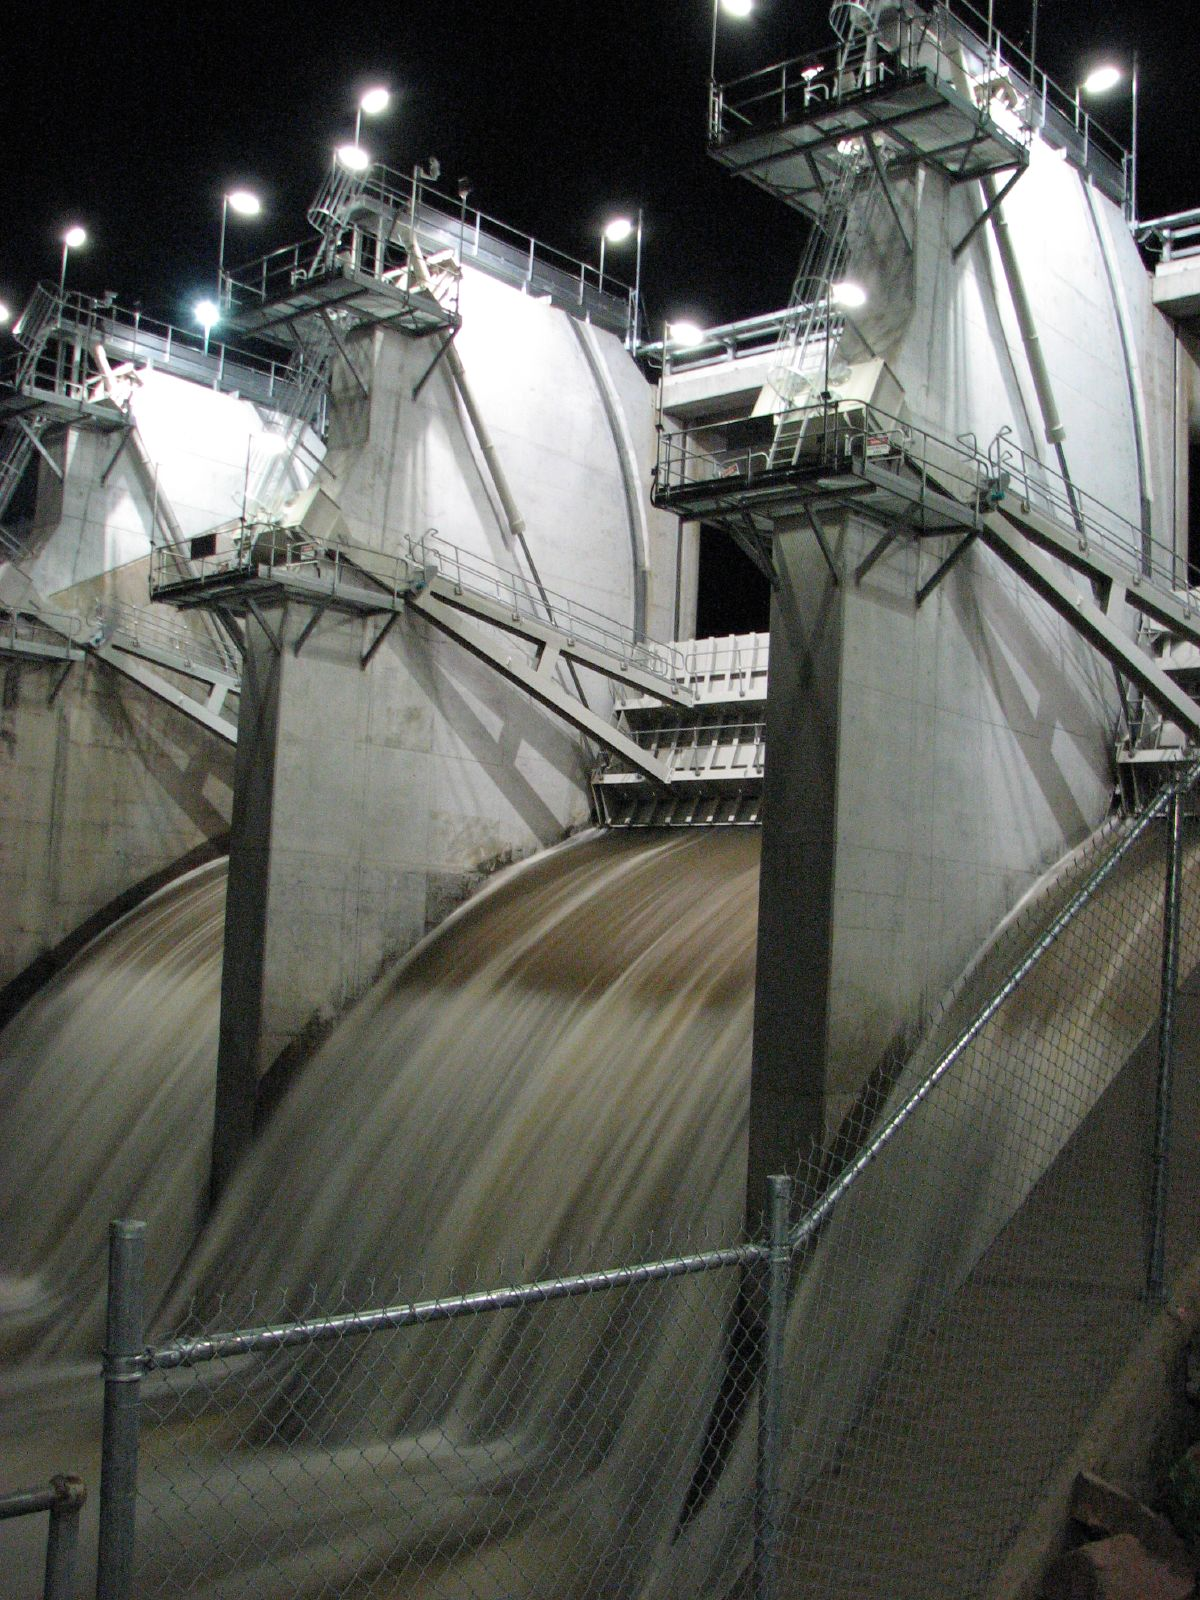 Ross River Dam at night, Floodgates are full open.